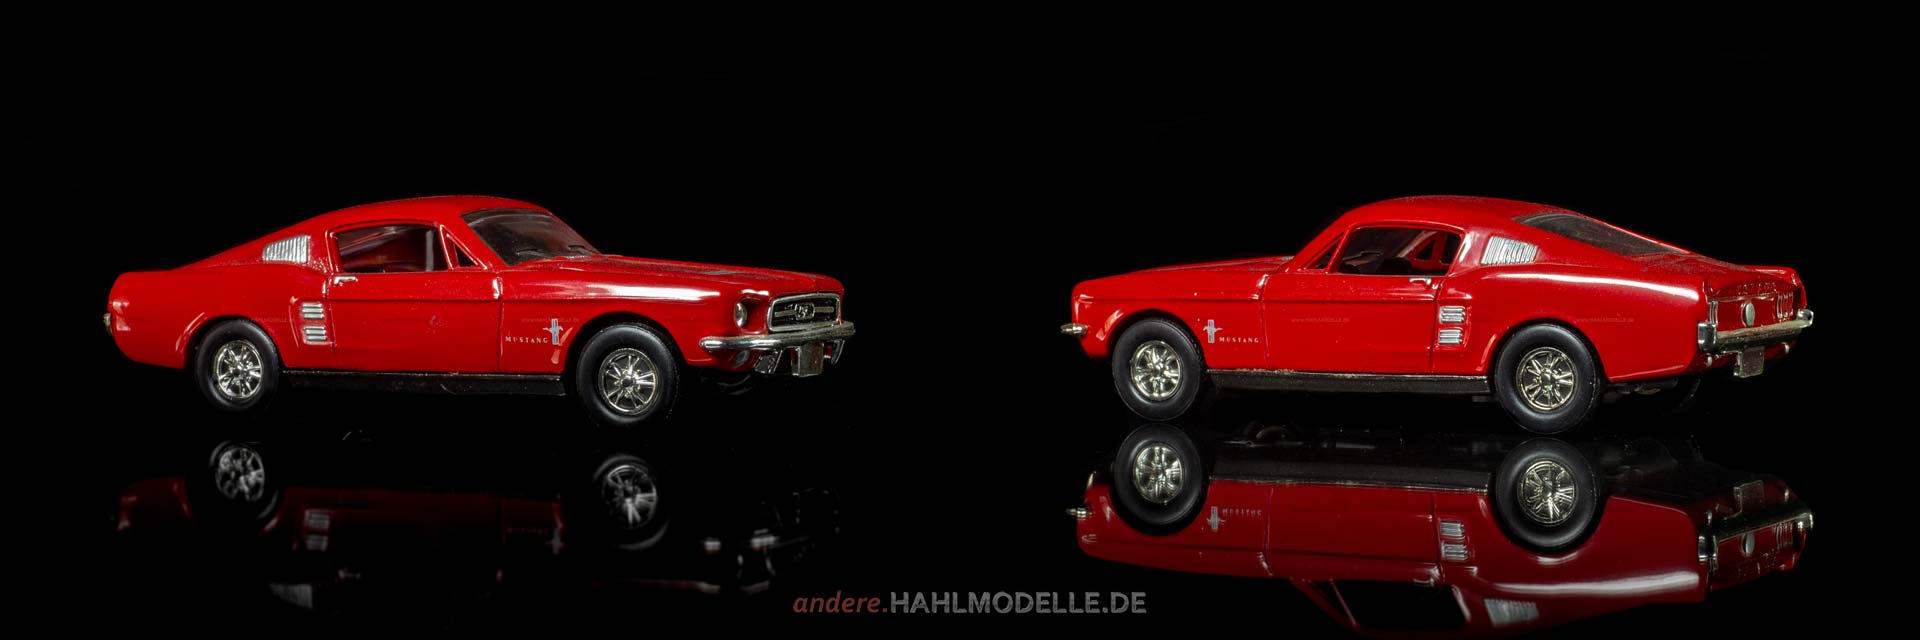 Ford Mustang I (1. Version) | Coupé | Ixo | 1:43 | www.andere.hahlmodelle.de